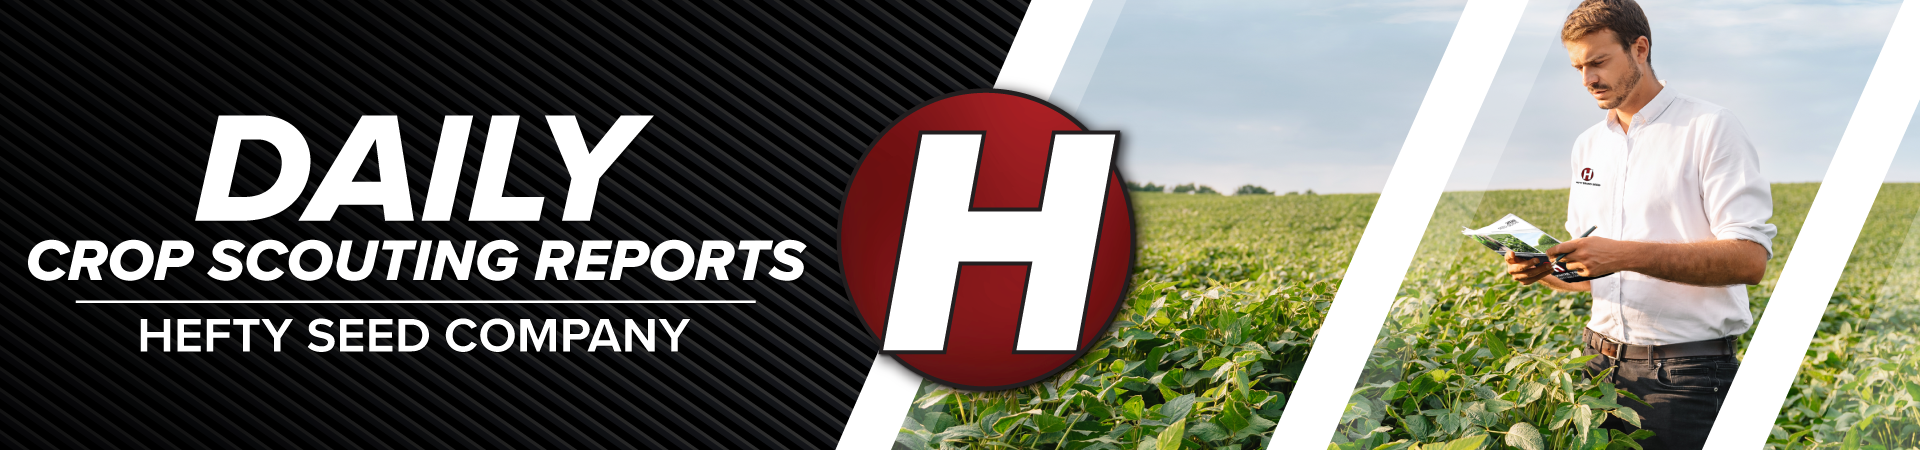 Daily Crop Scouting Reports